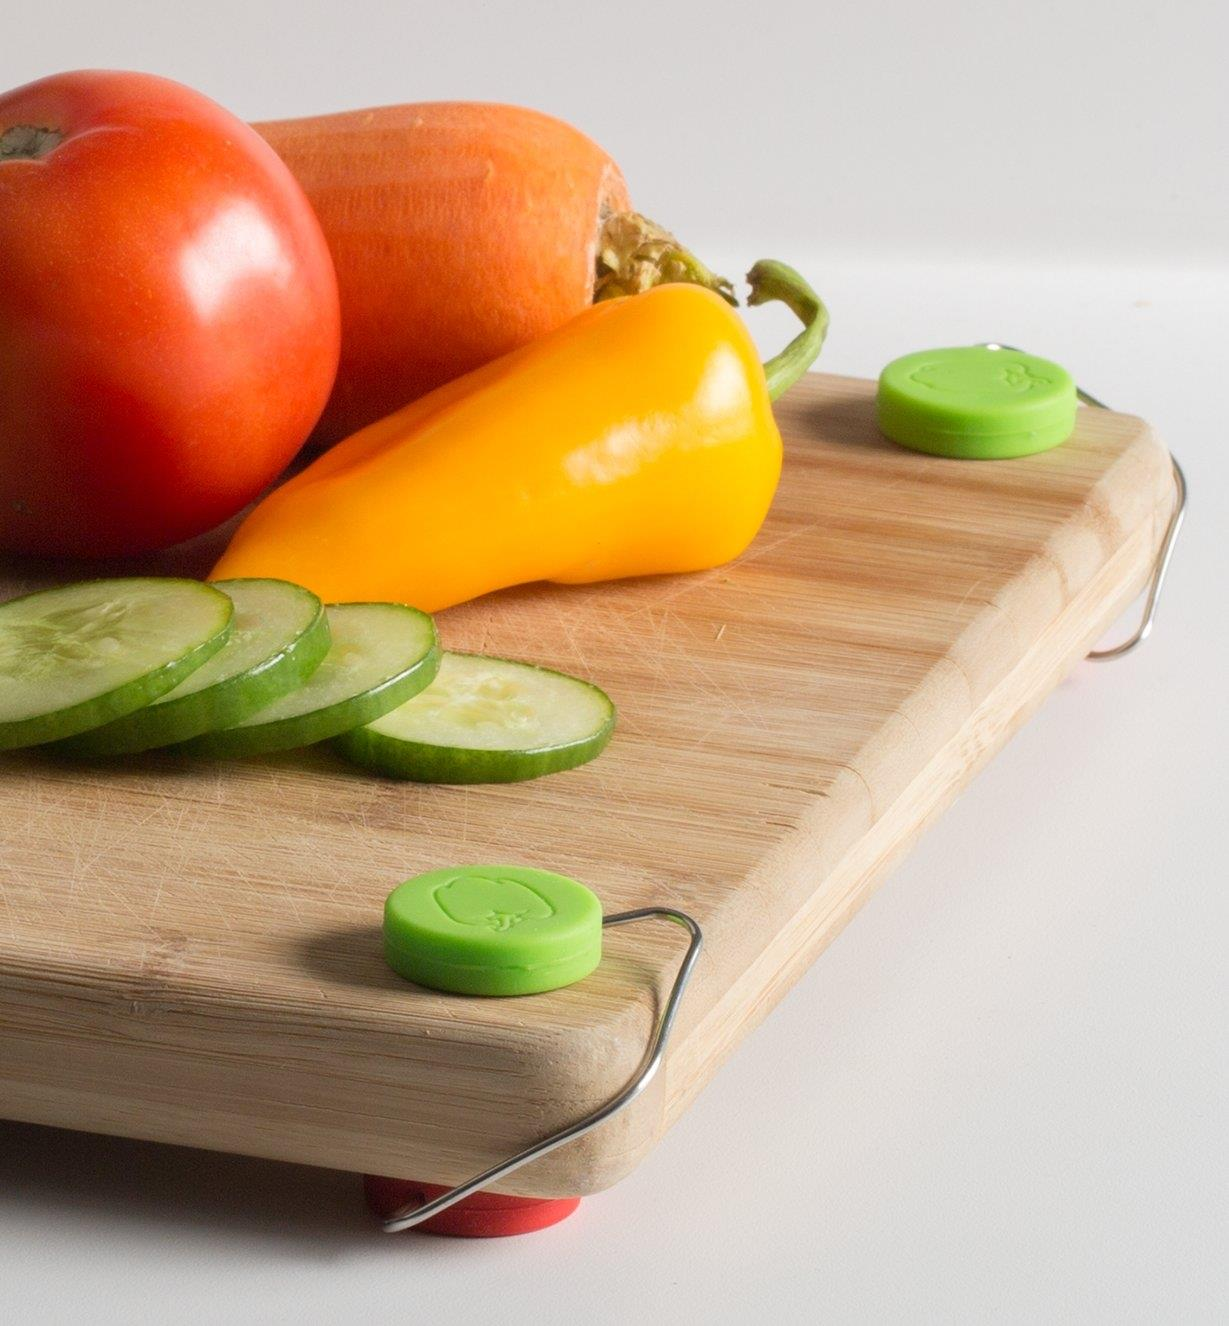 Non-Slip Feet clipped on the corners of a Cutting Board